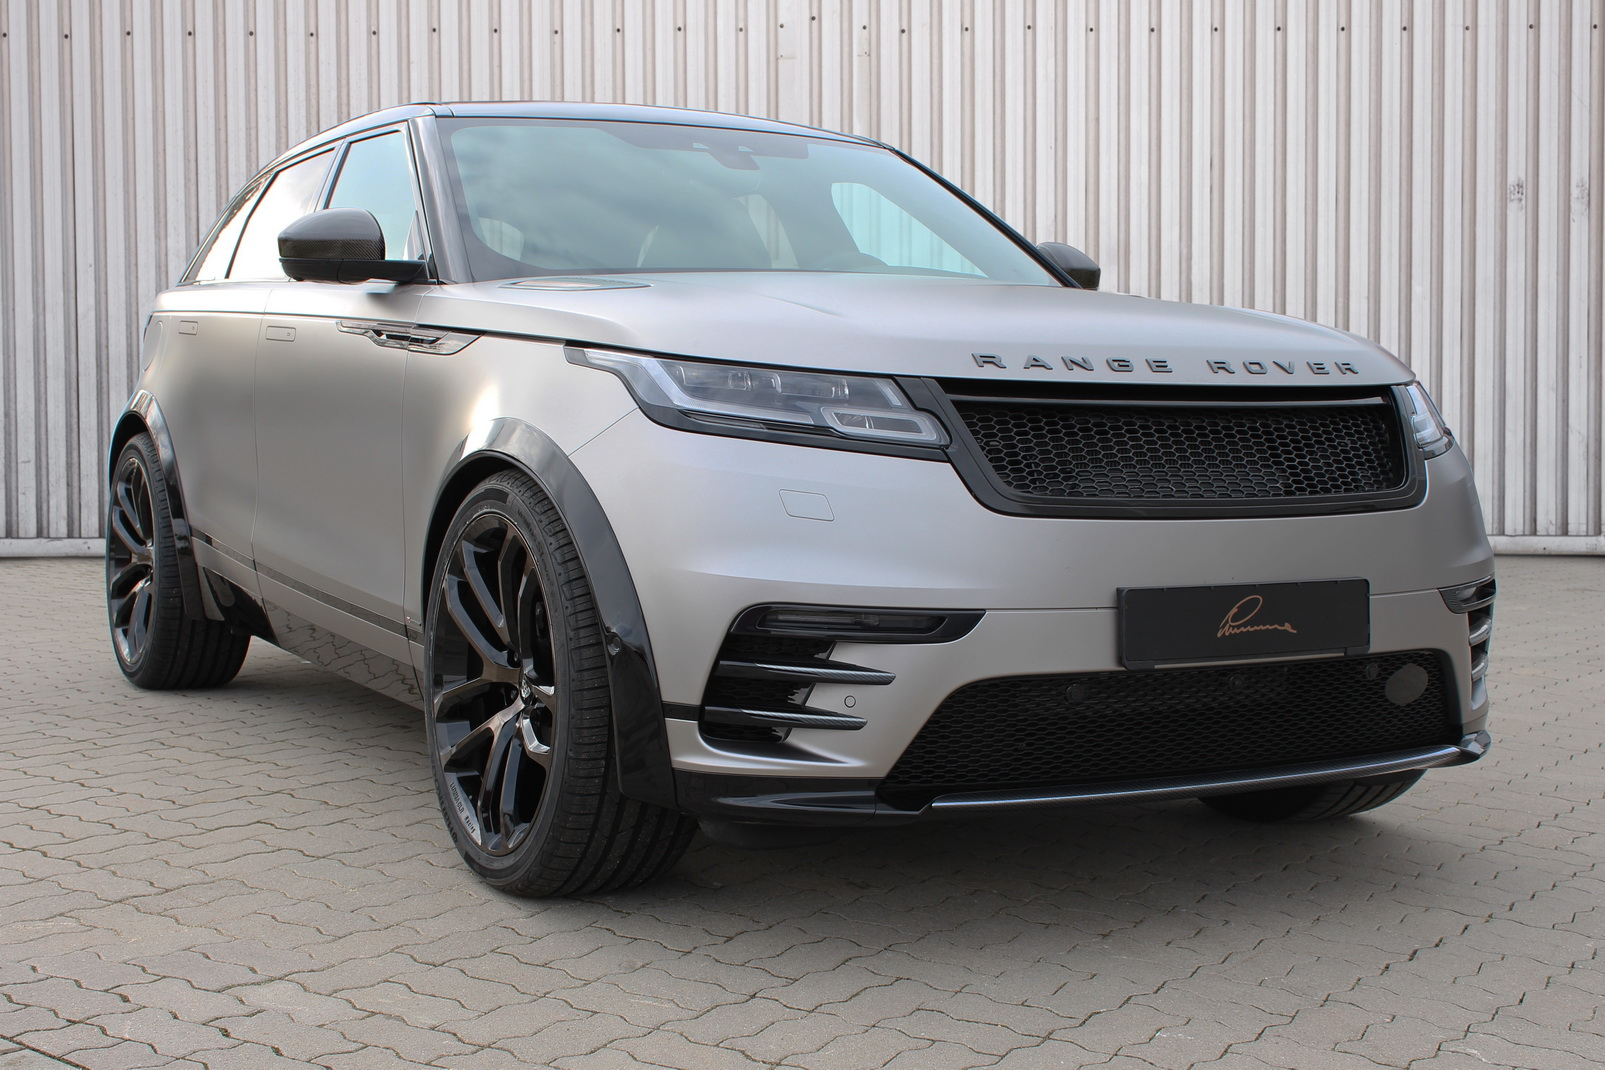 Range Rover Sport For Sale >> Subtle Range Rover Velar Tuning By Lumma Design